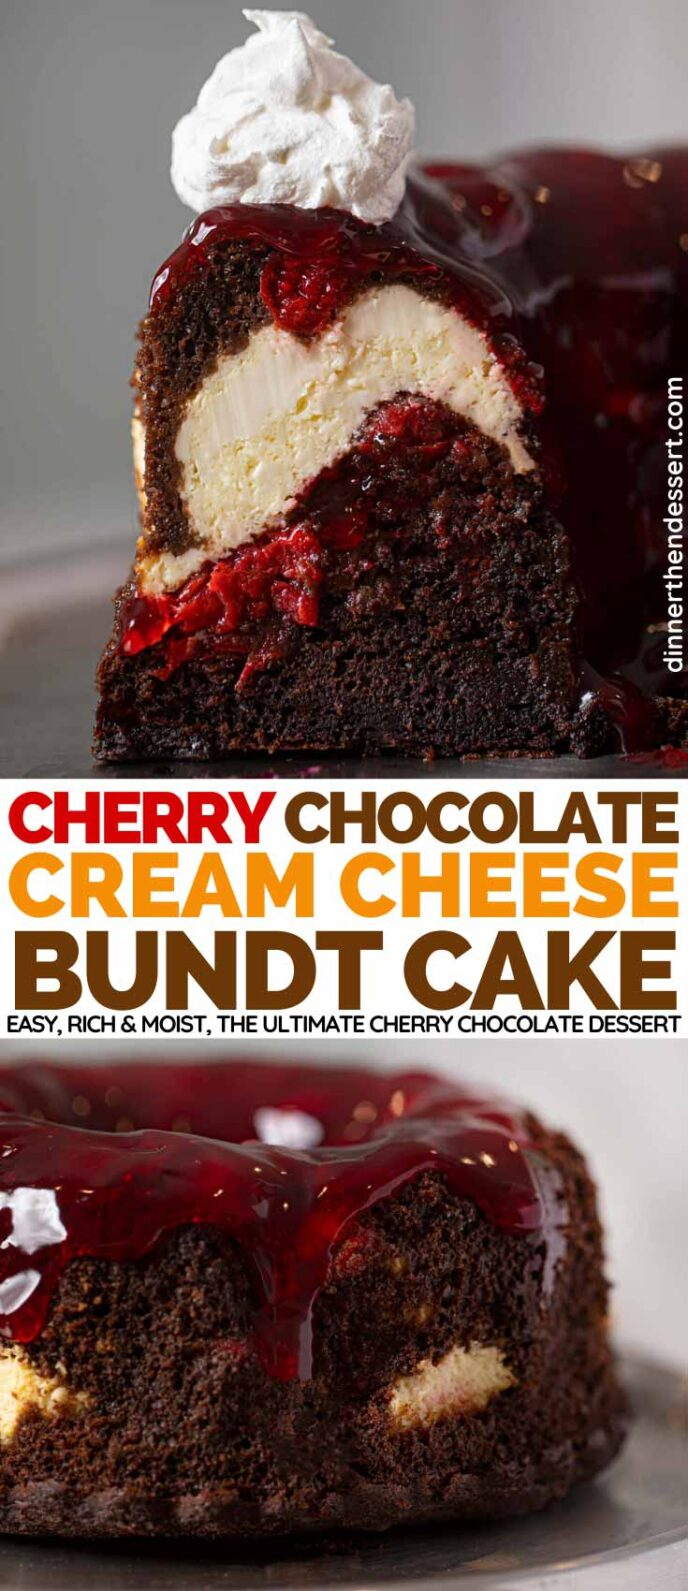 Cherry Chocolate Cream Cheese Bundt Cake collage